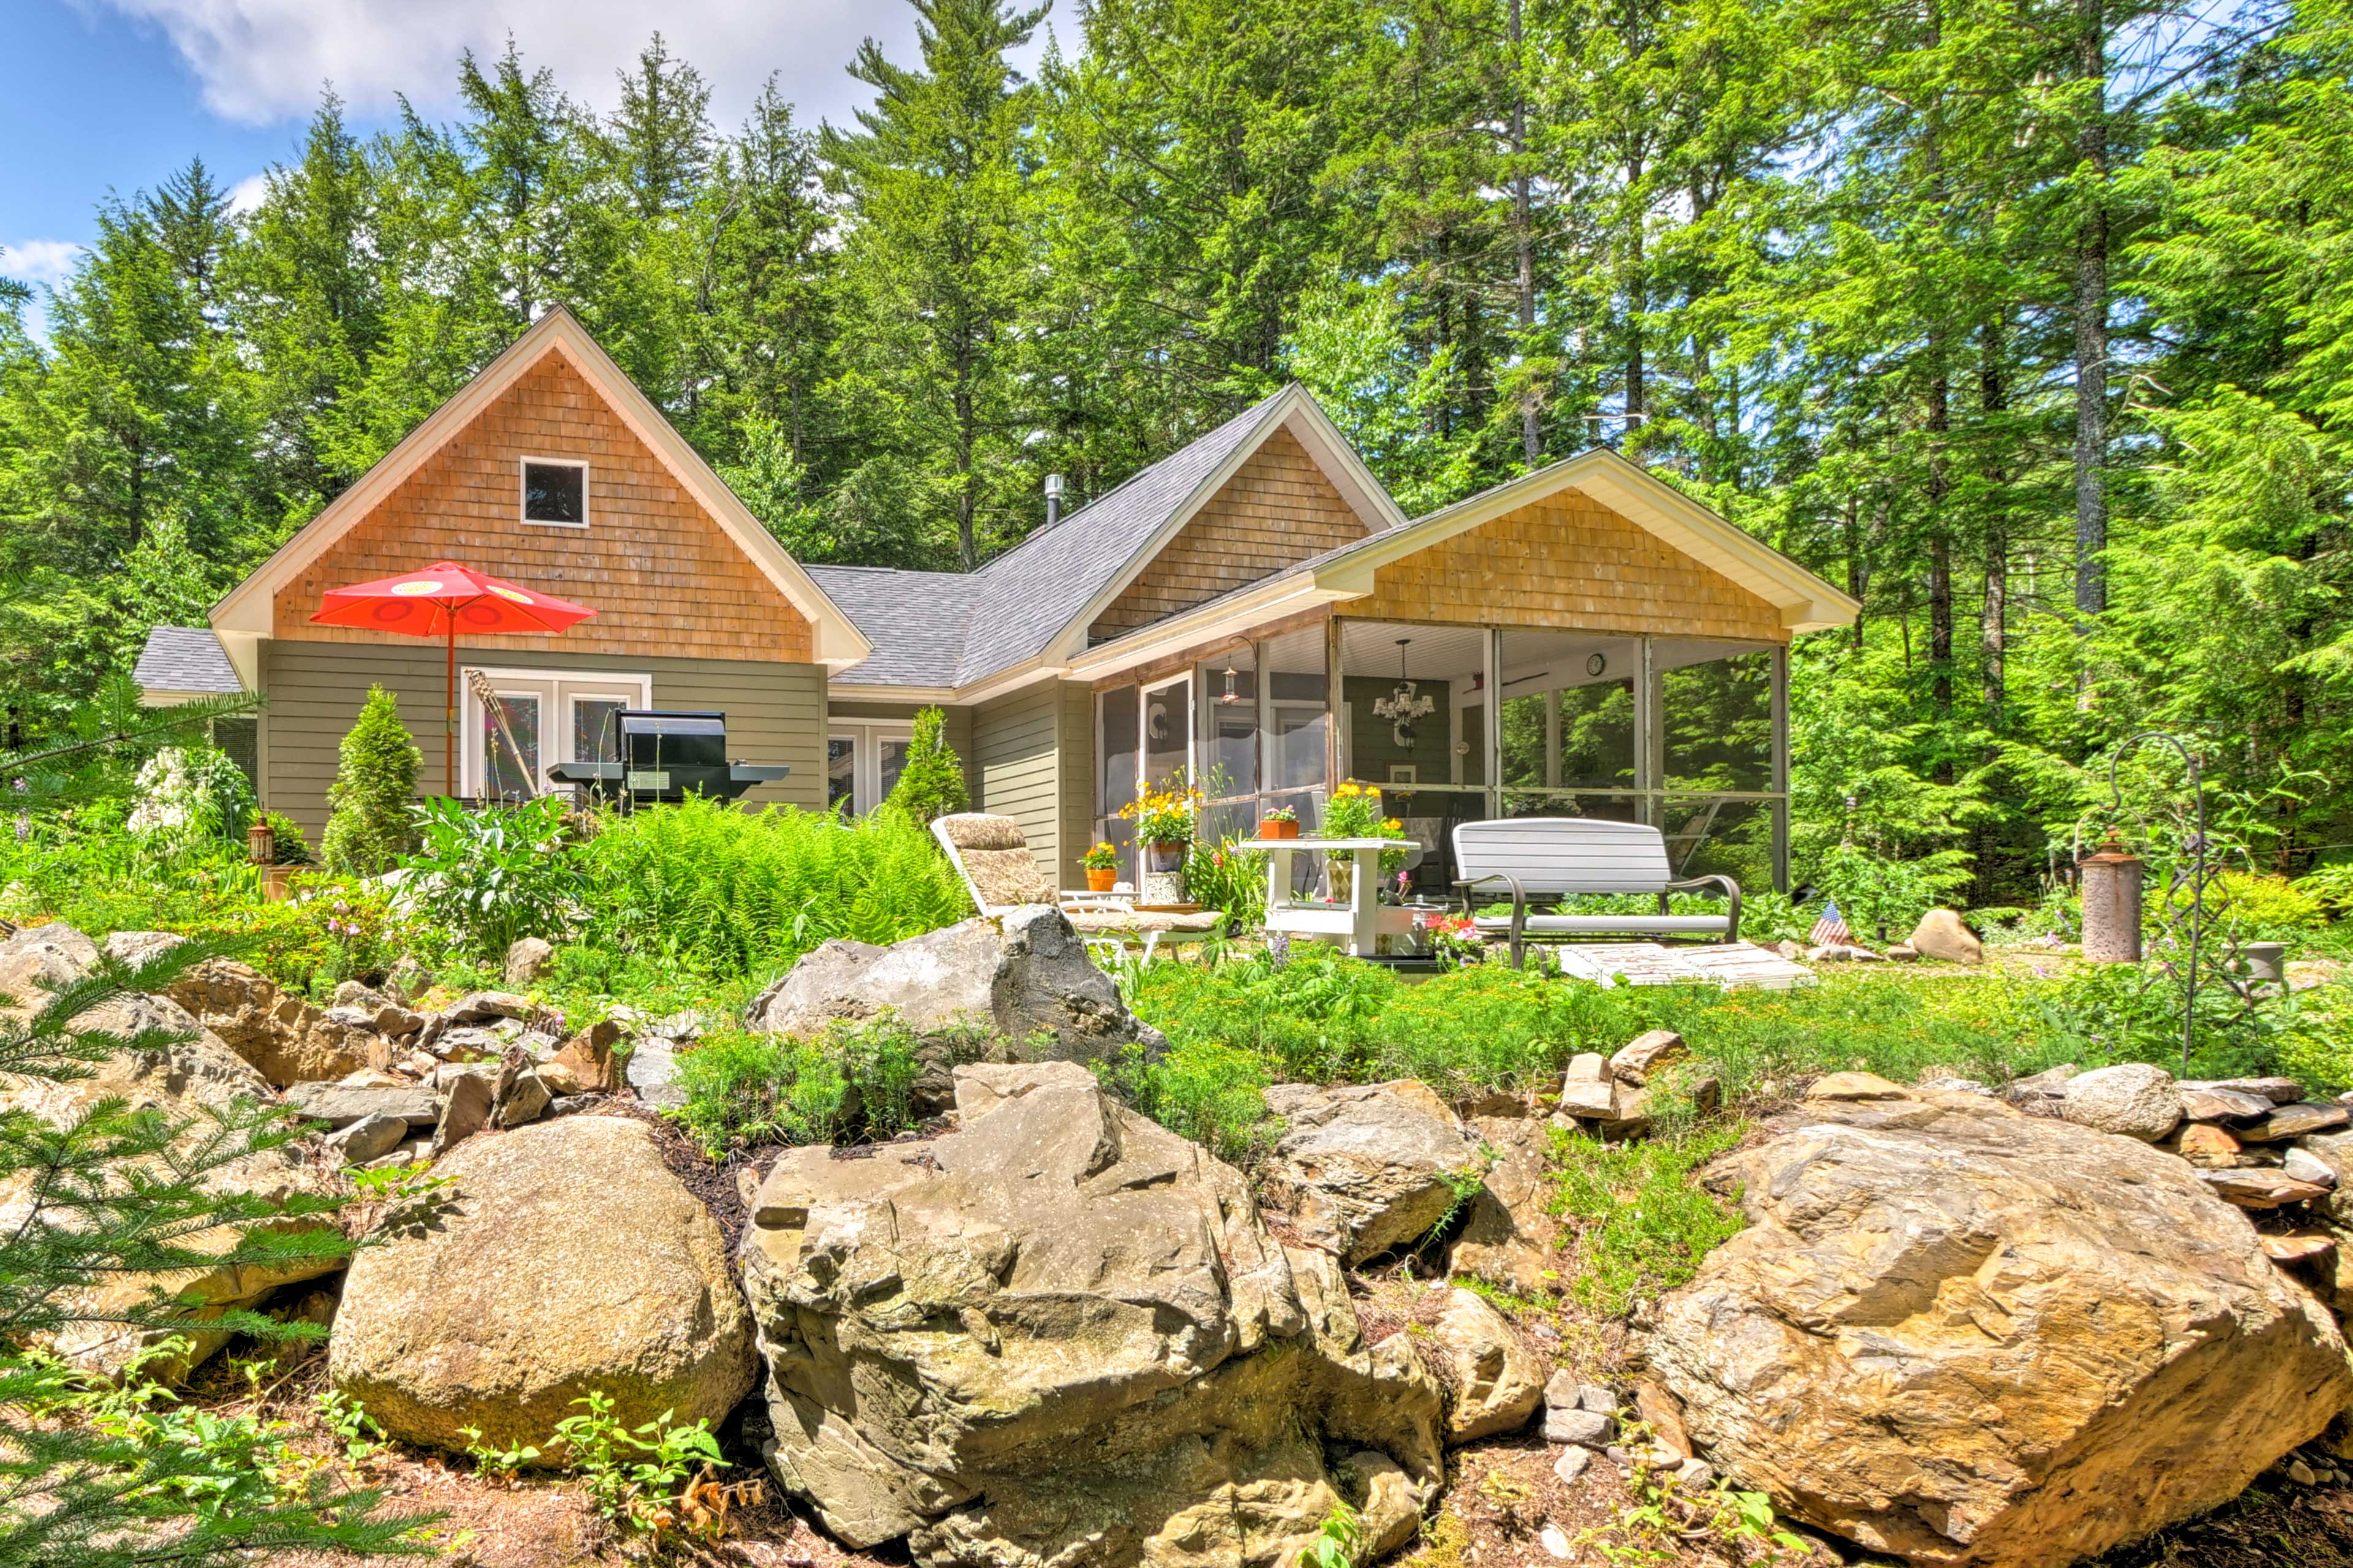 Soak up the sun as you step outside the 1,600SF home to the furnished deck!